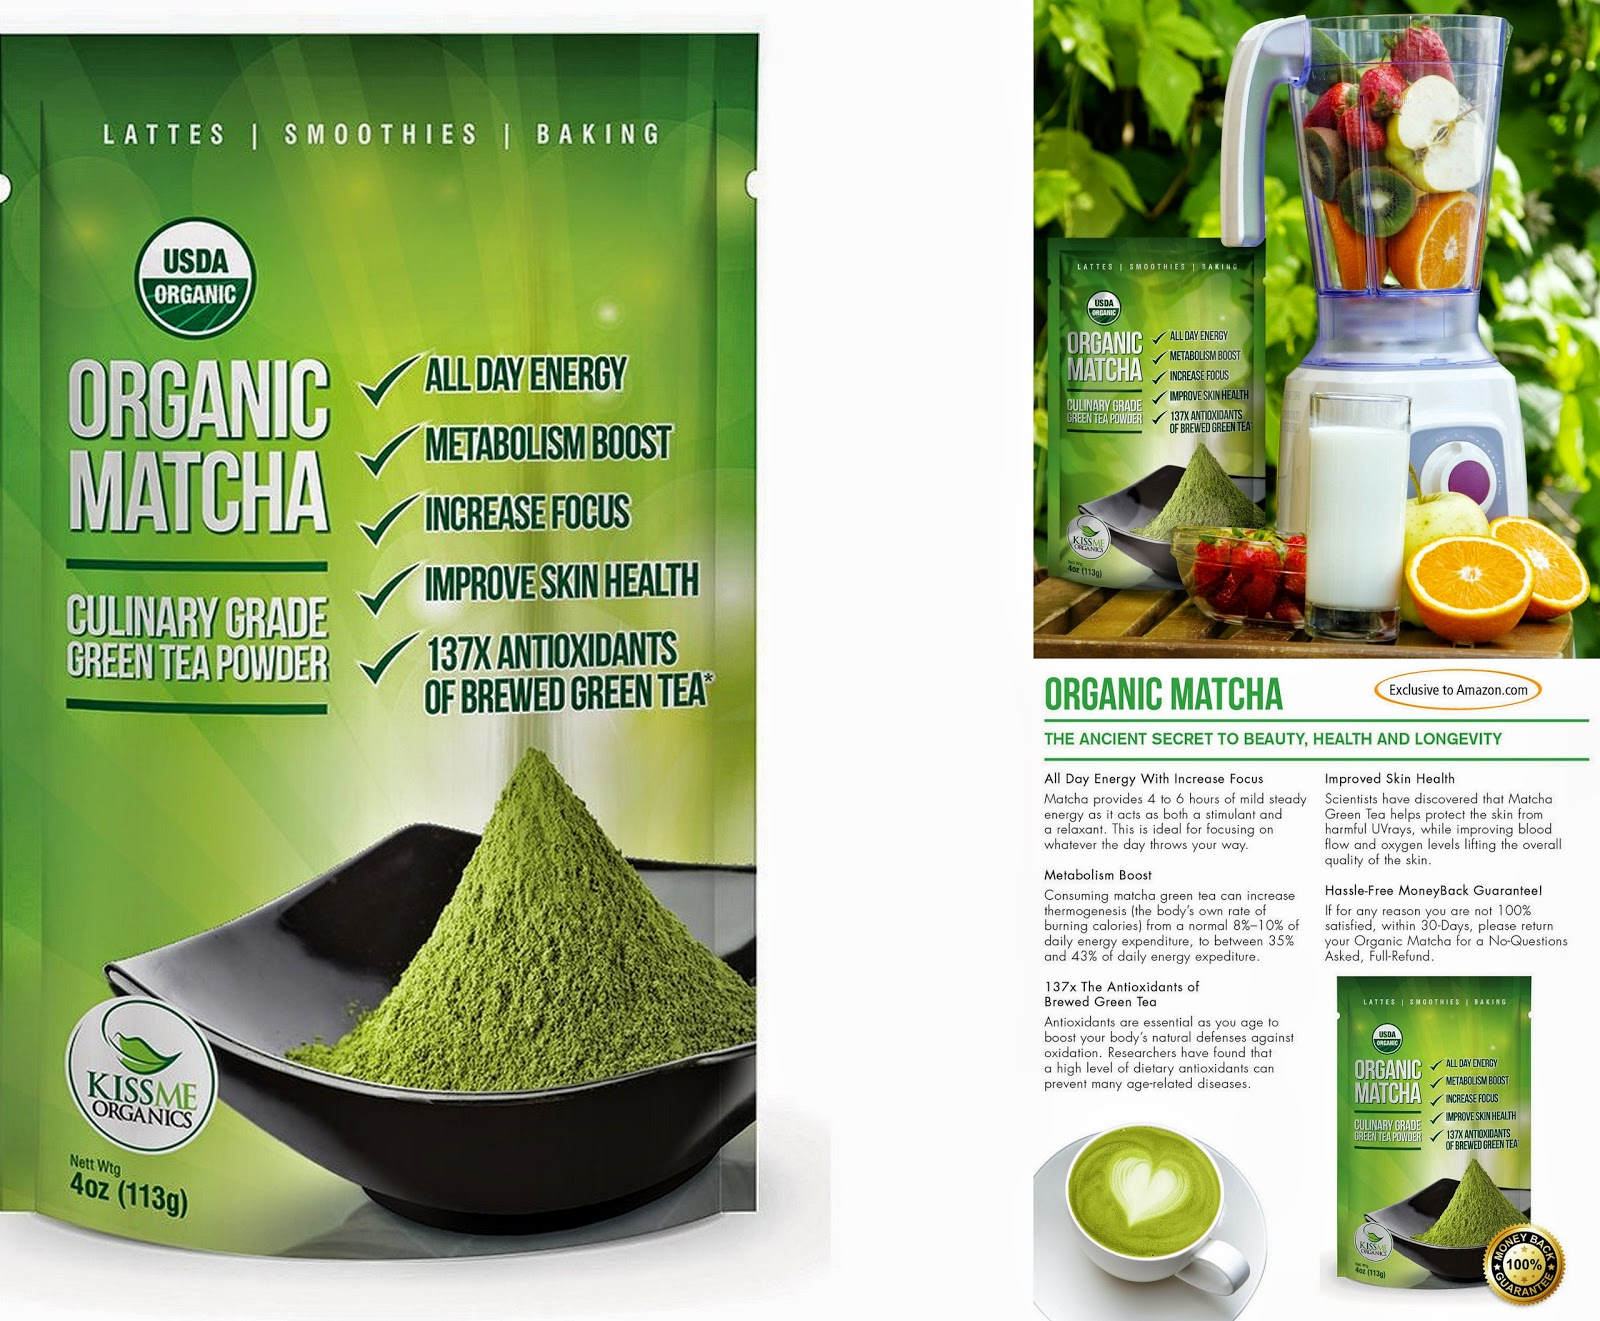 KISS ME ORGANICS MATCHA GREEN TEA POWDER www.sandysandhu.co